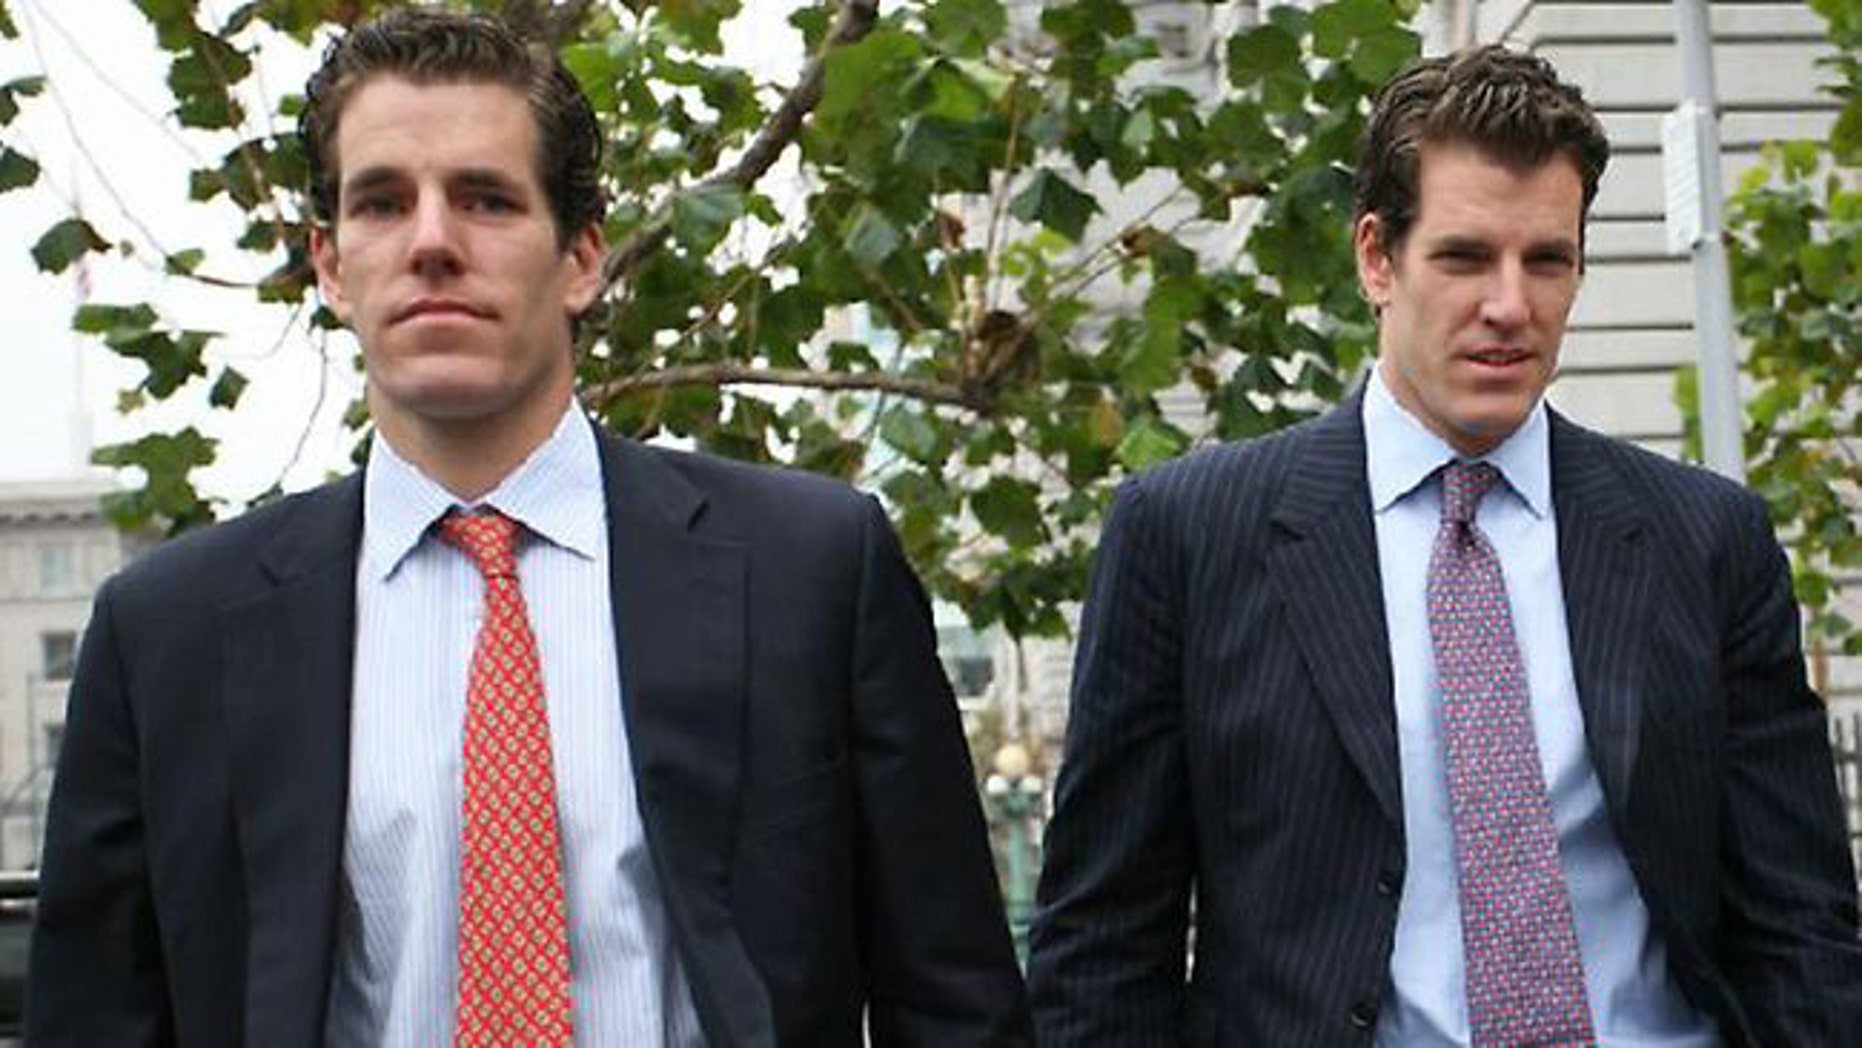 Winkdex: Winklevoss twins plan bitcoin index | Fox News